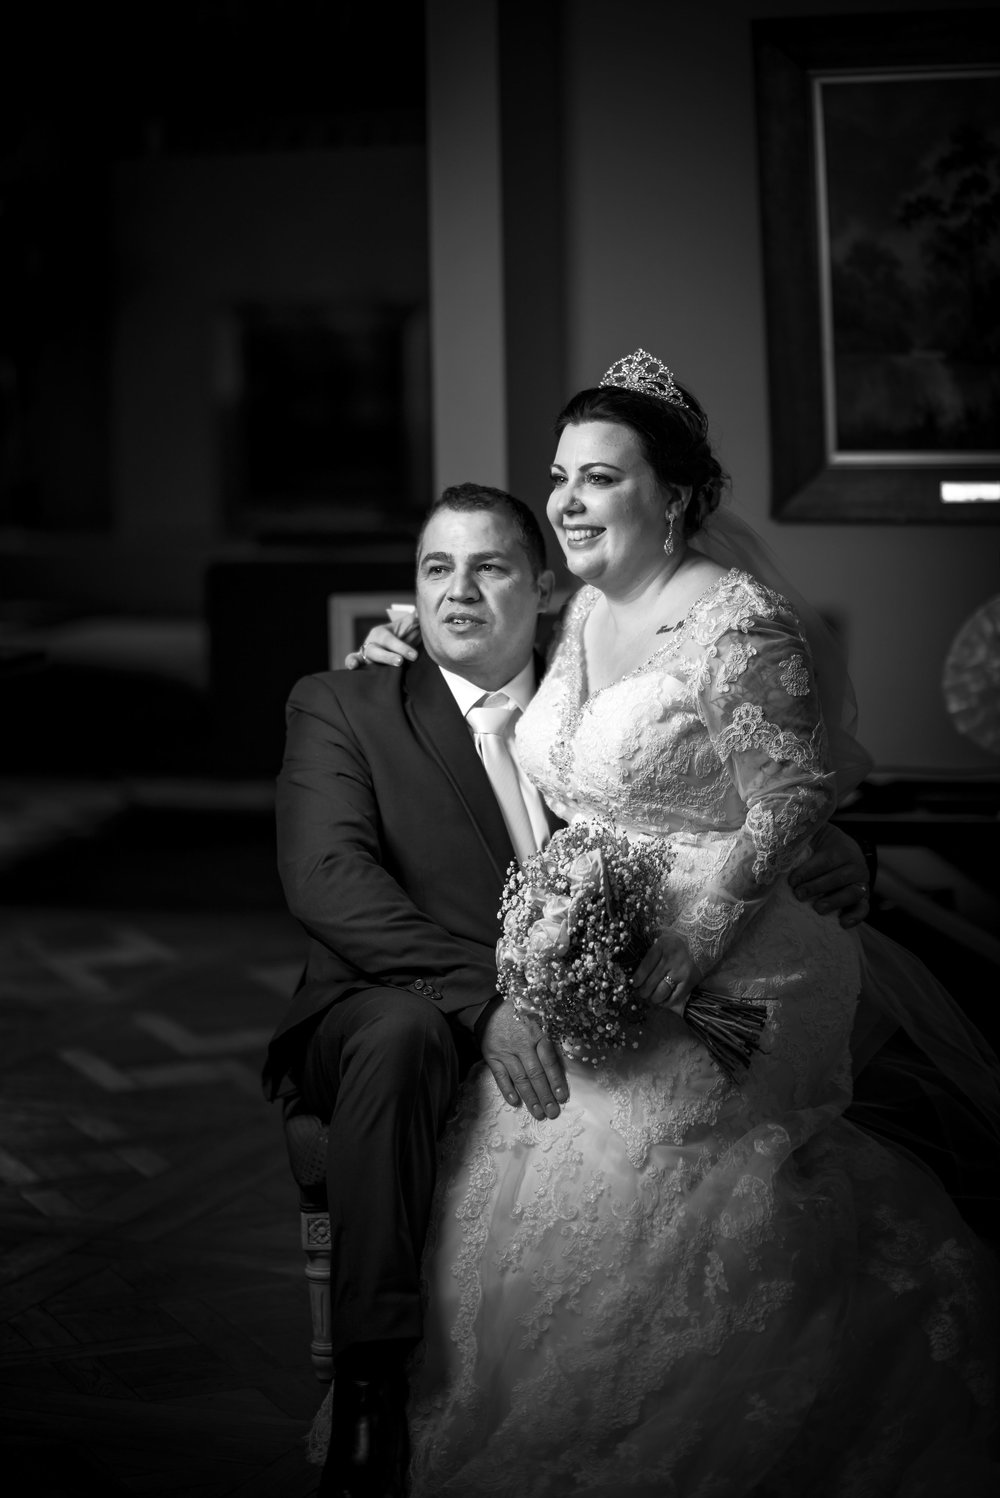 Mark Carniato Photography - Wedding Photography Melbourne (158).jpg